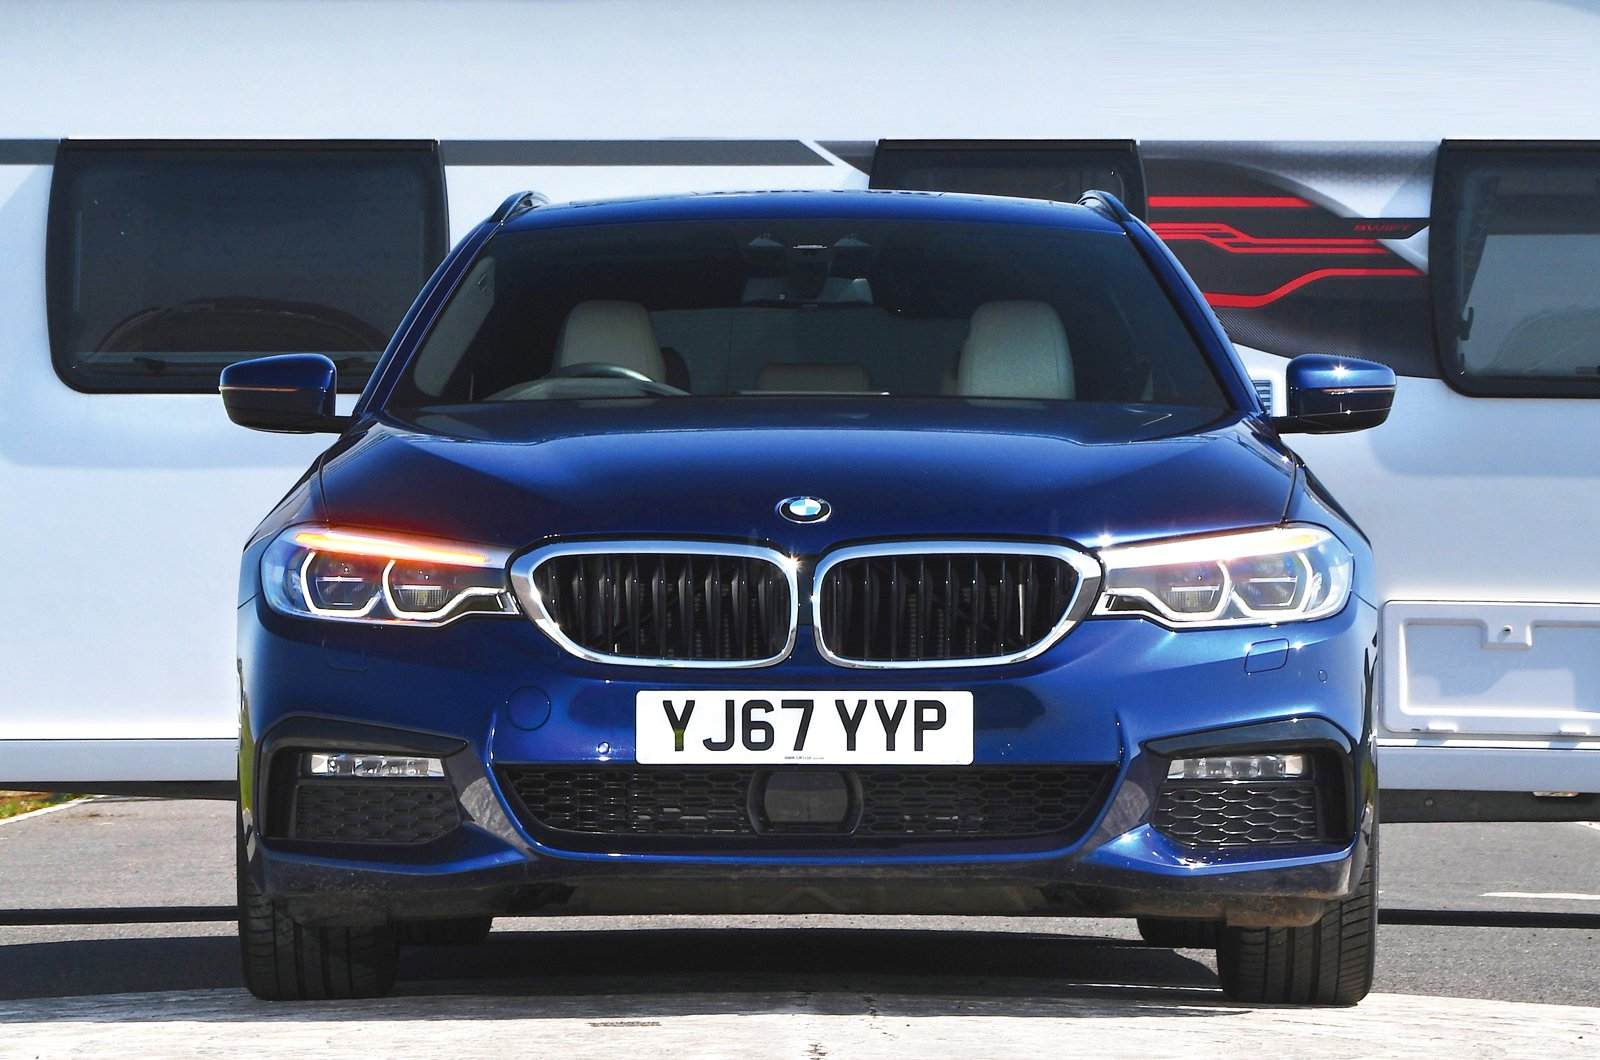 Used Tow Car winner - BMW 5 Series Touring